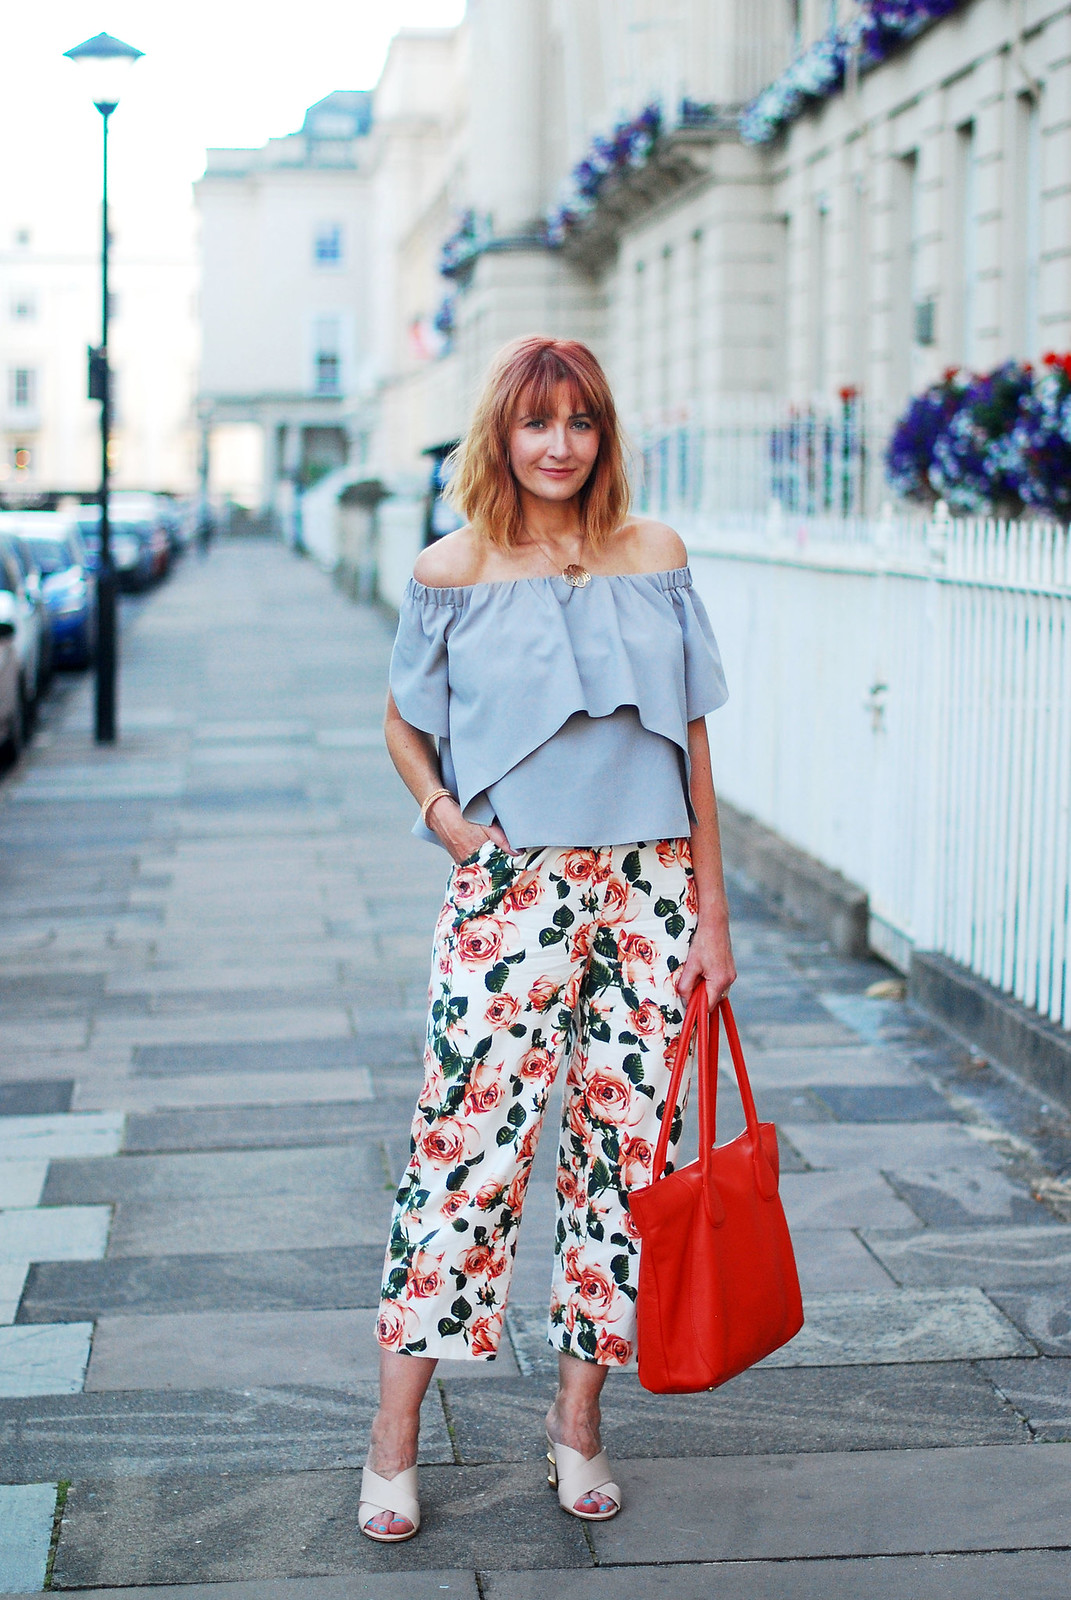 Summer style: Off the shoulder ruffle top, floral cropped trousers, orange tote | Not Dressed As Lamb, over 40 style